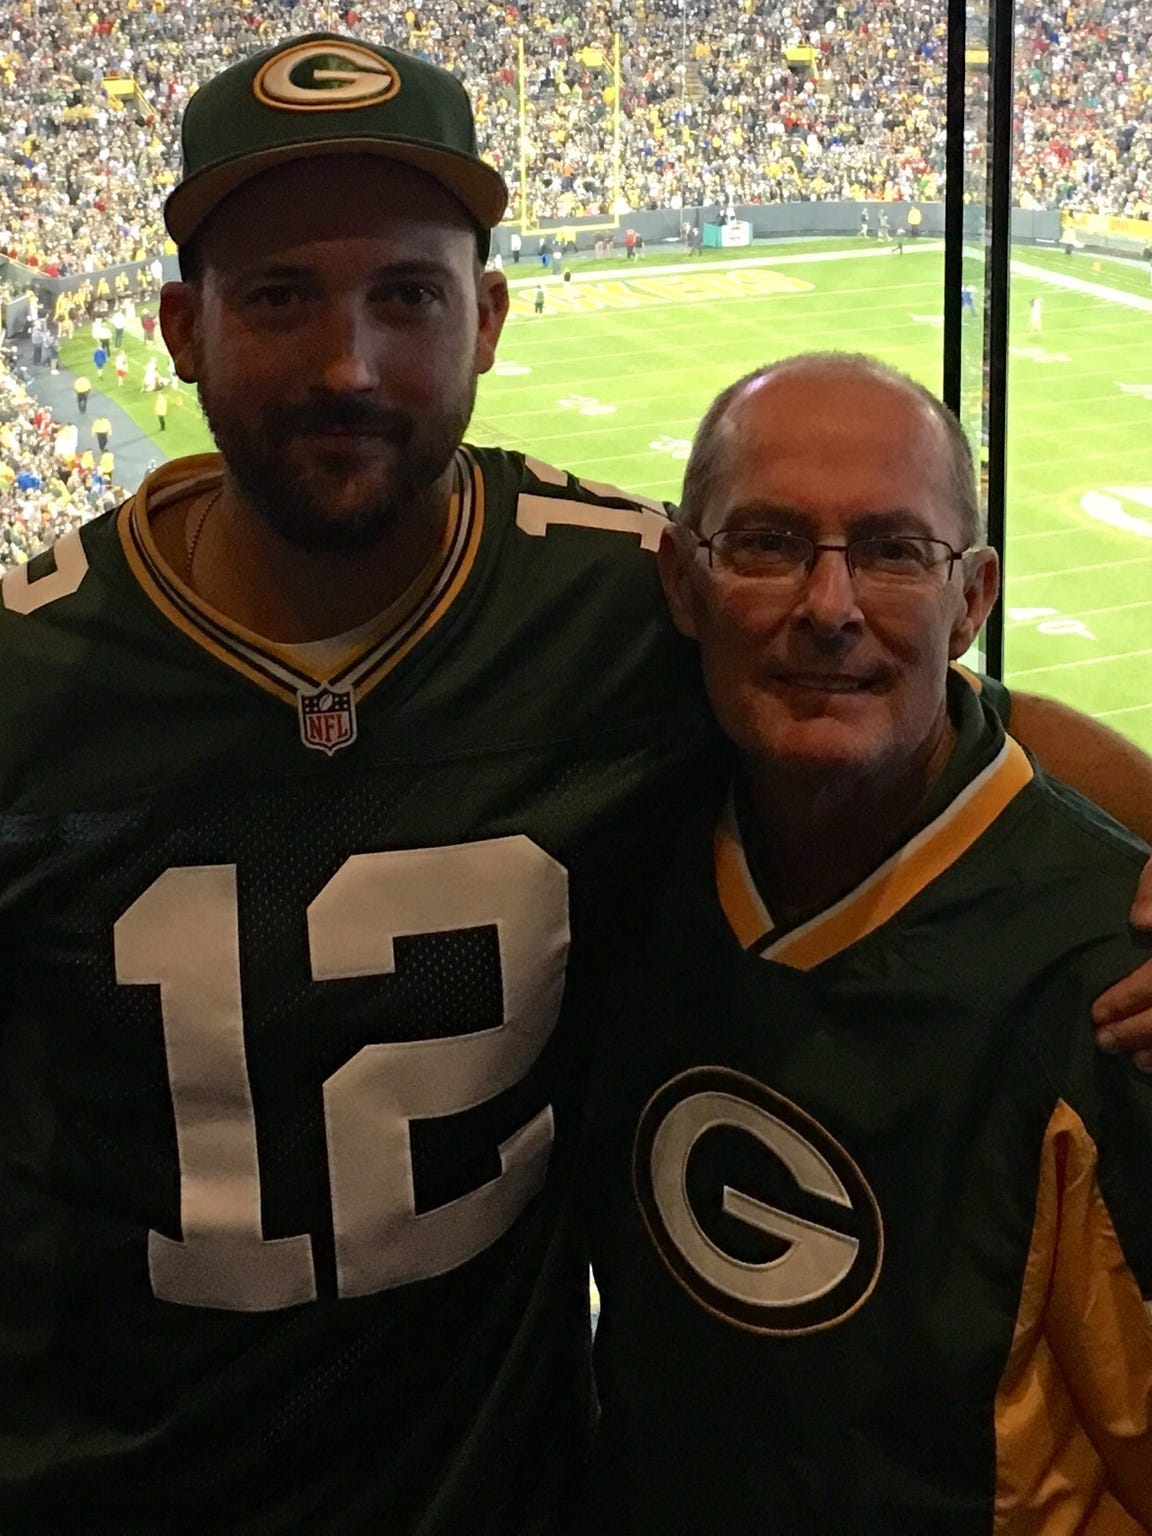 Spencer Laird (left) and Tim Moran at a Green Bay Packers